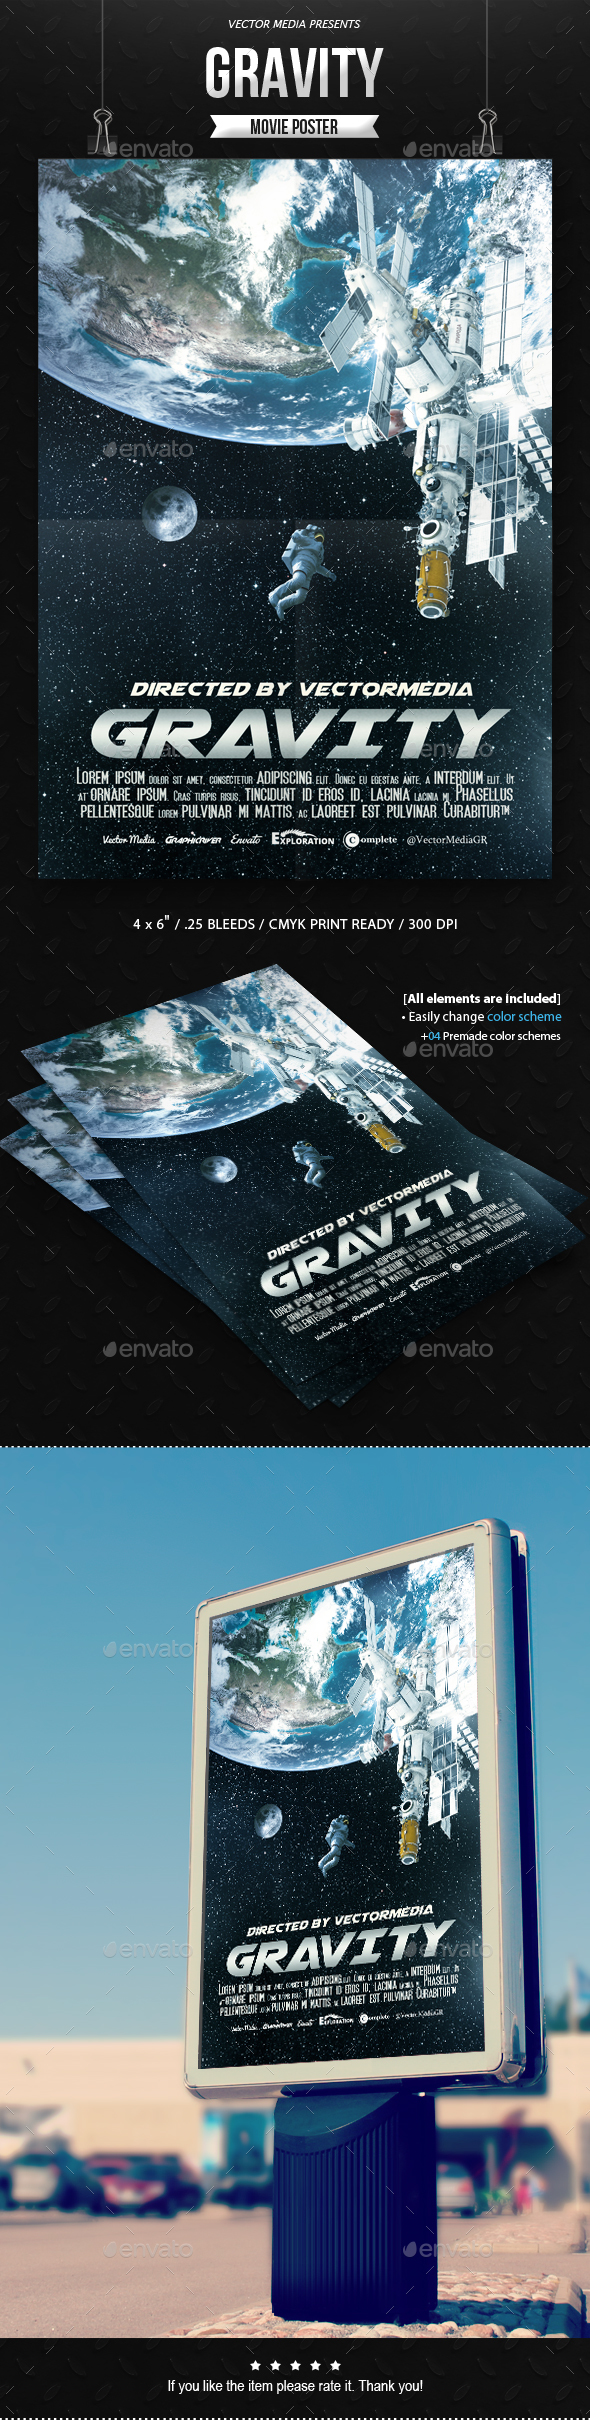 Gravity - Movie Poster - Miscellaneous Events